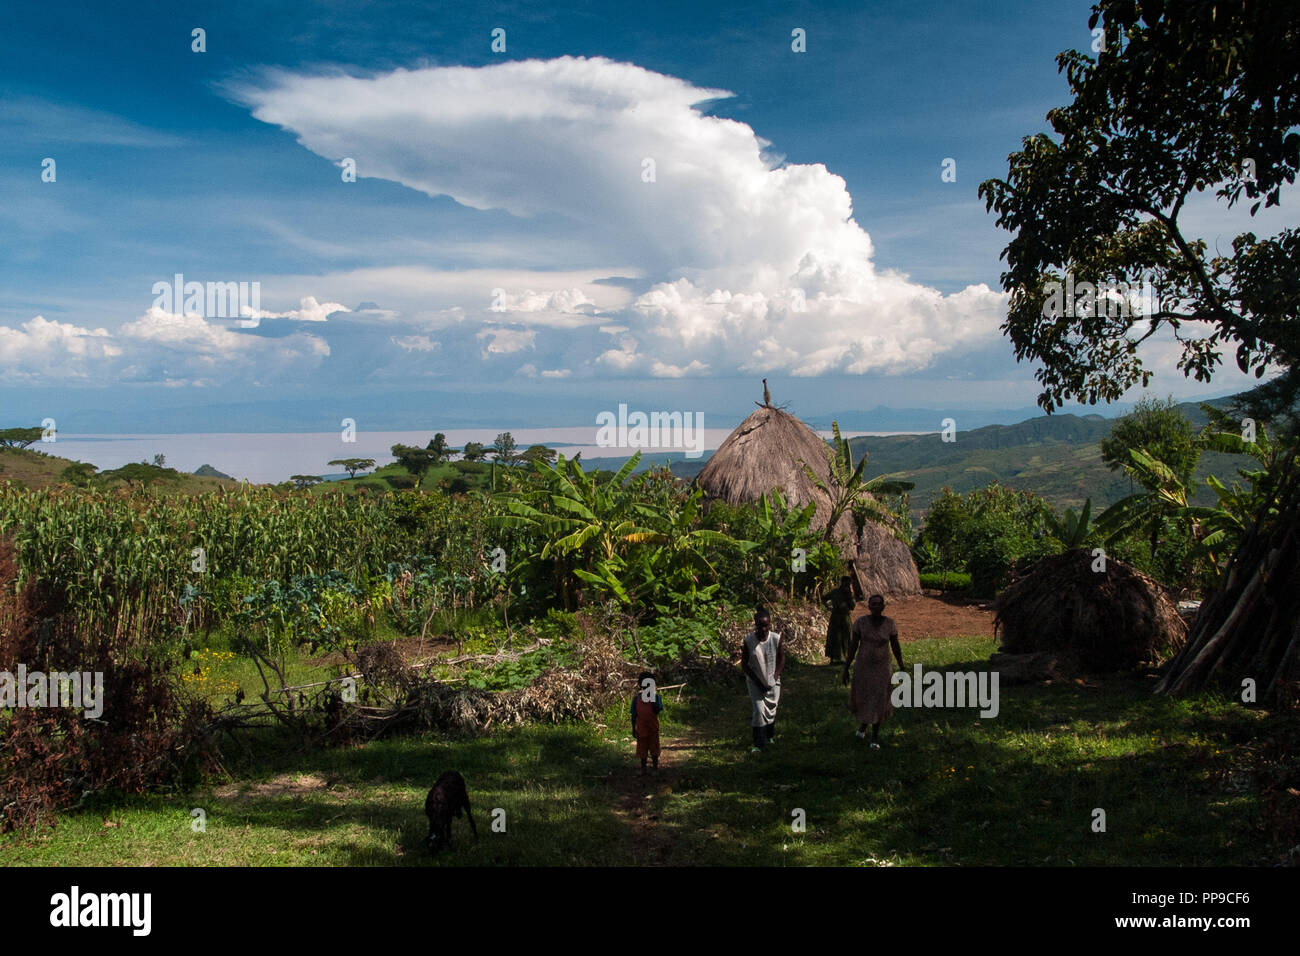 Small holding farm with views of a lake, Ethiopia. - Stock Image